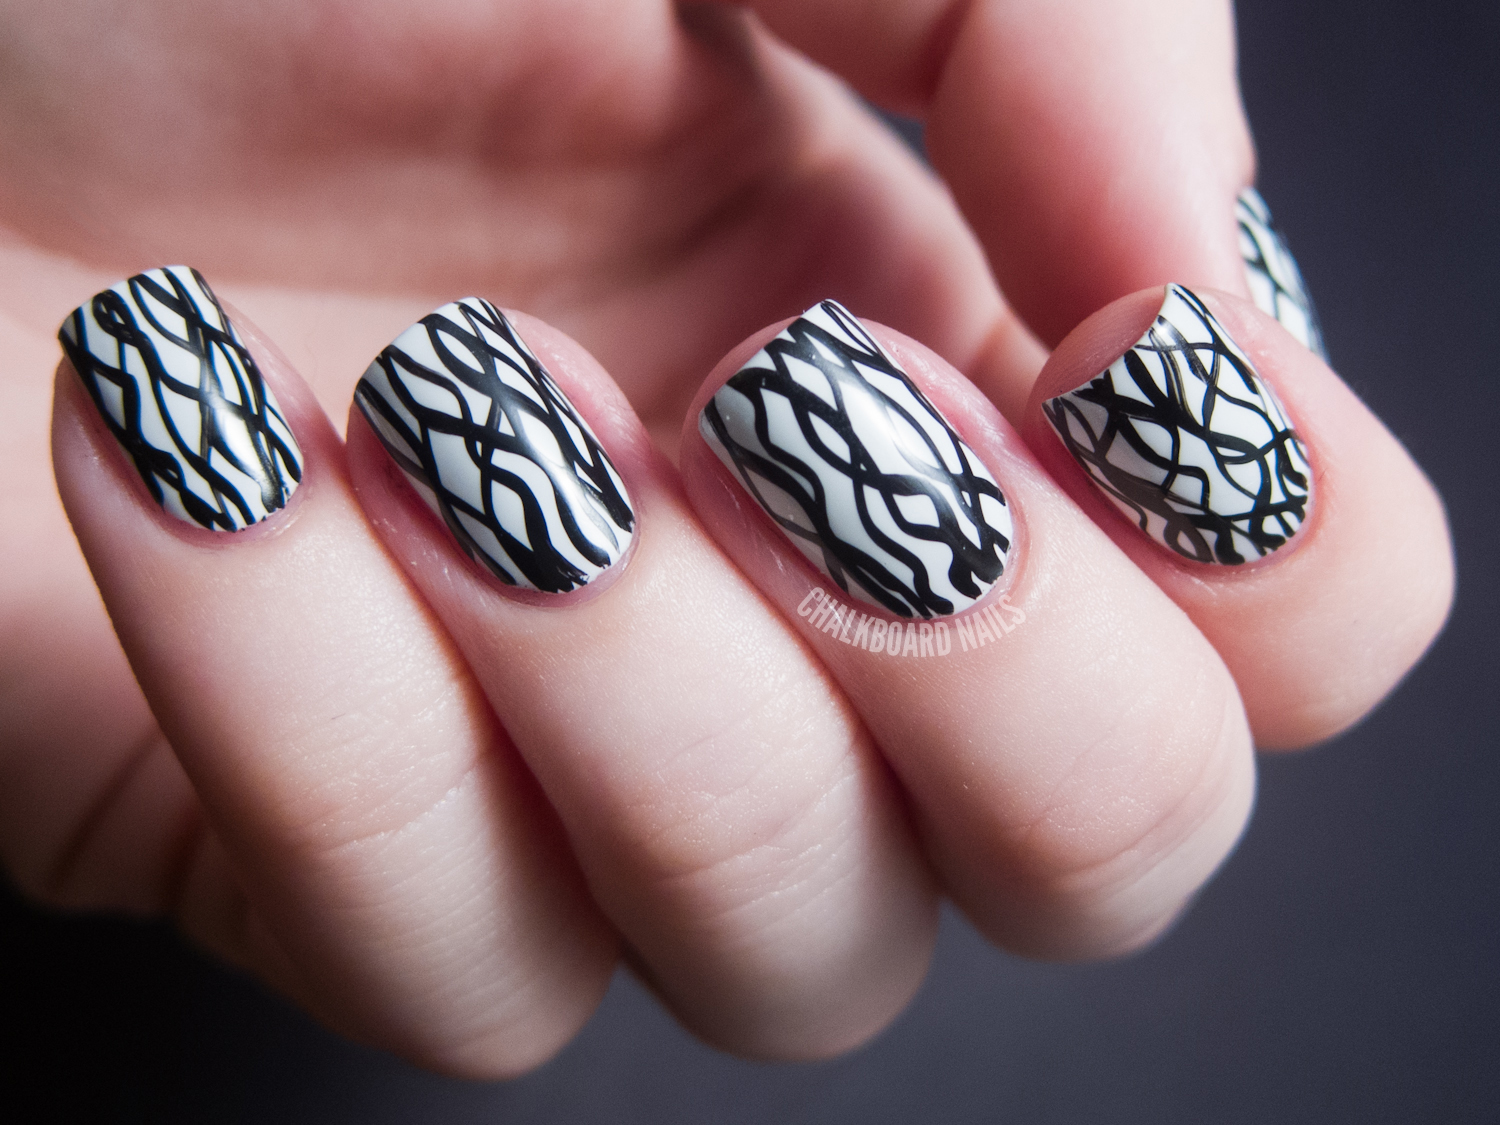 31DC2012: Day 07, Black and White Nails | Chalkboard Nails ...